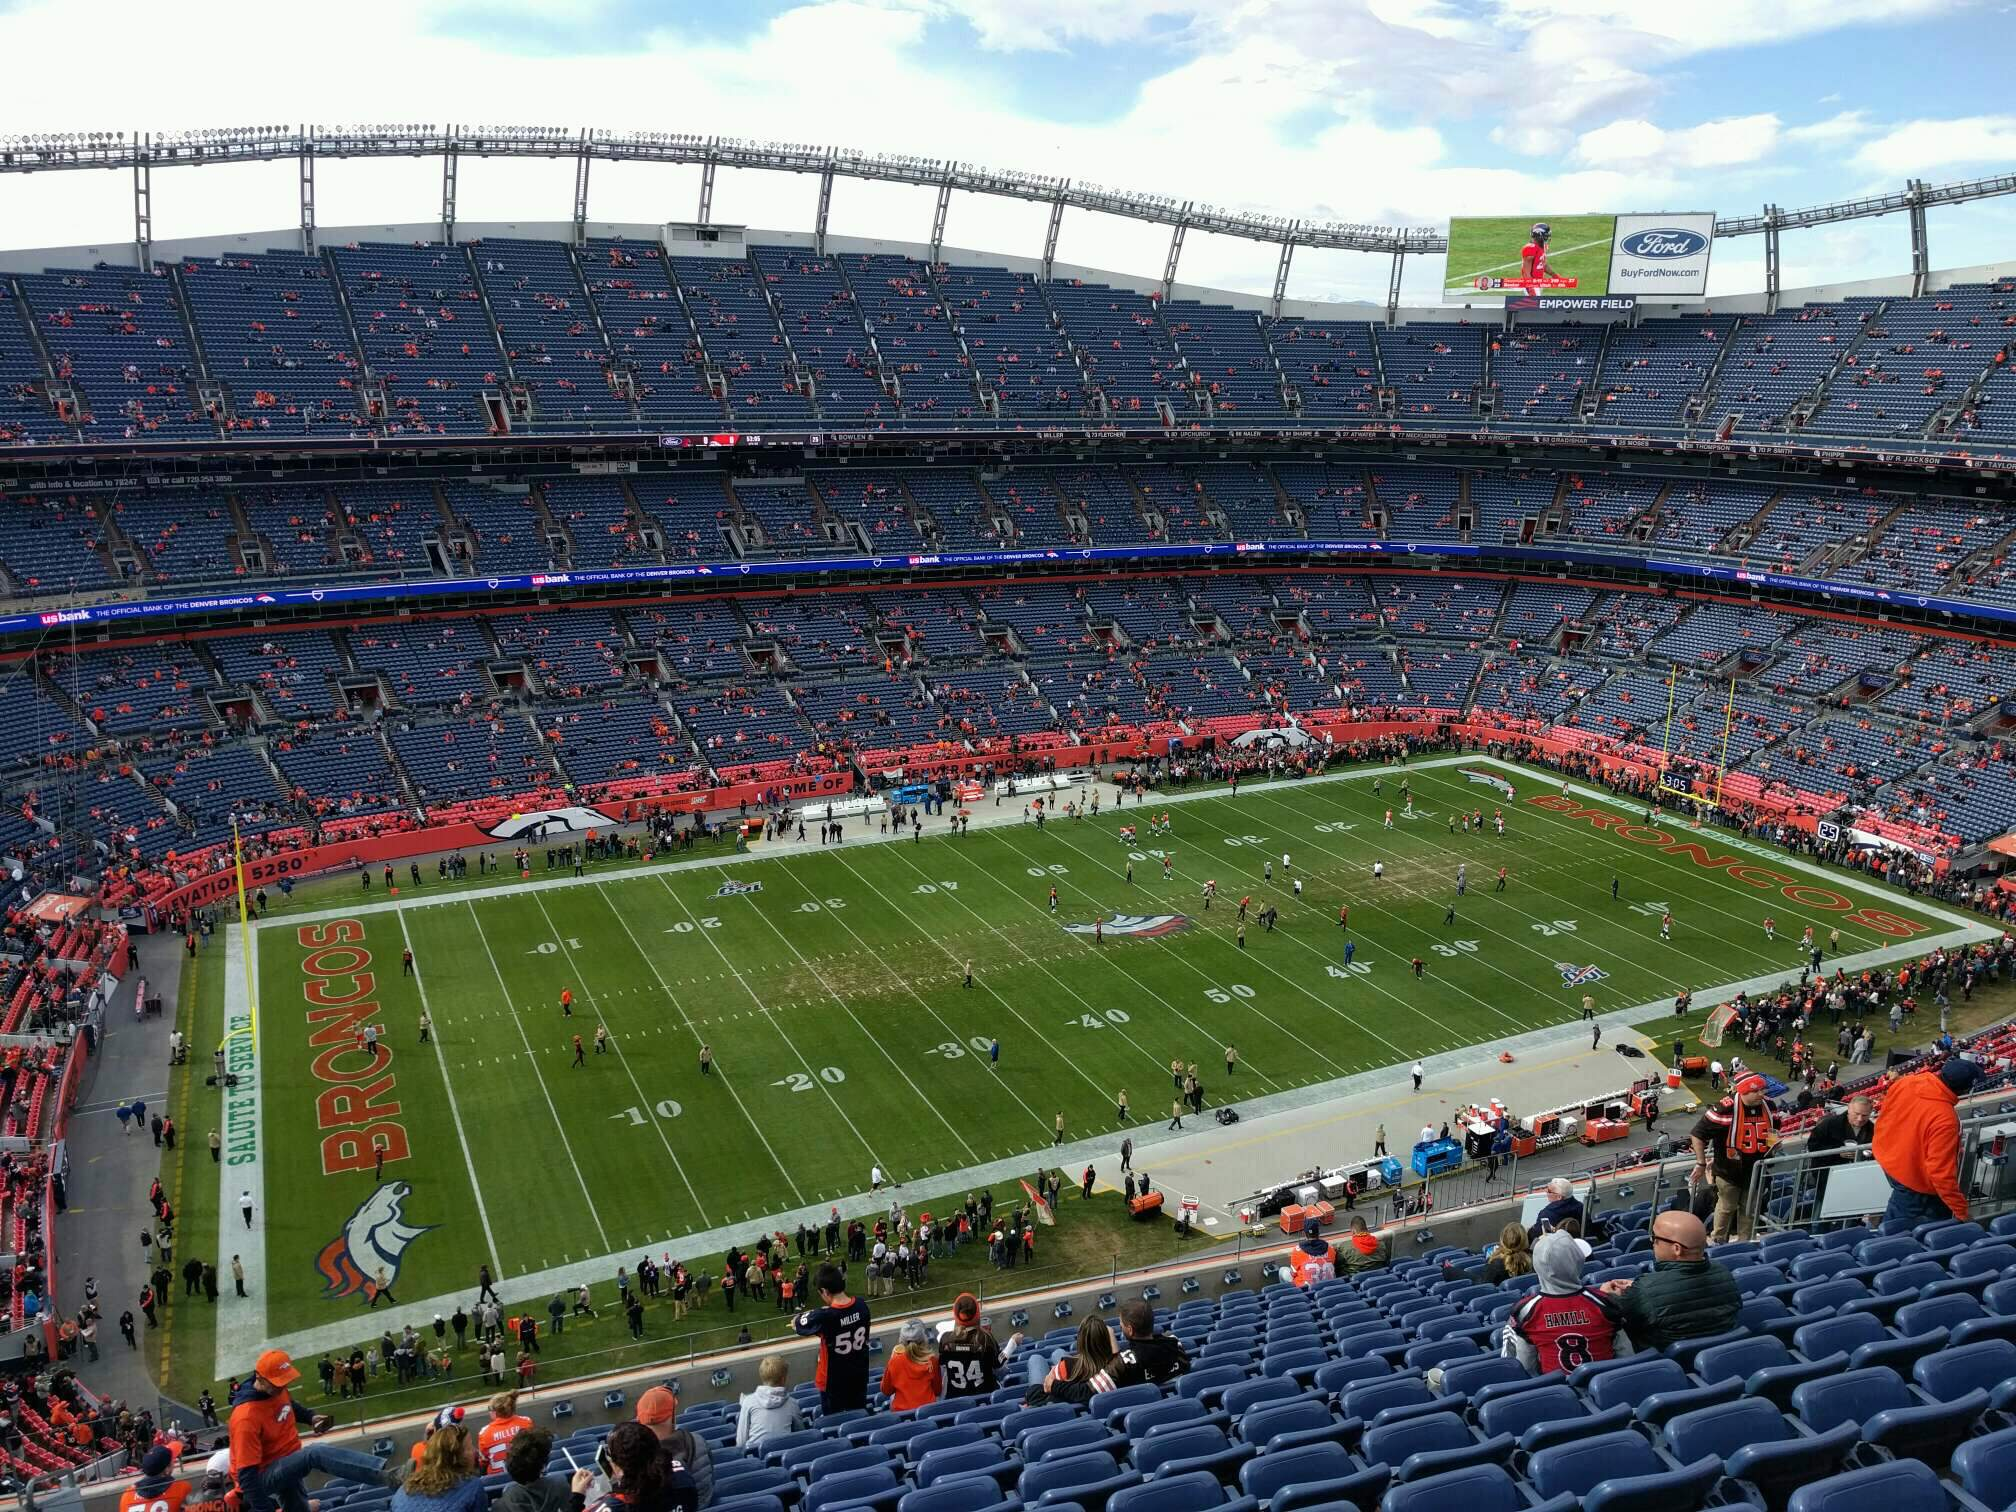 Empower Field at Mile High Stadium Section 538 Row 16 Seat 21